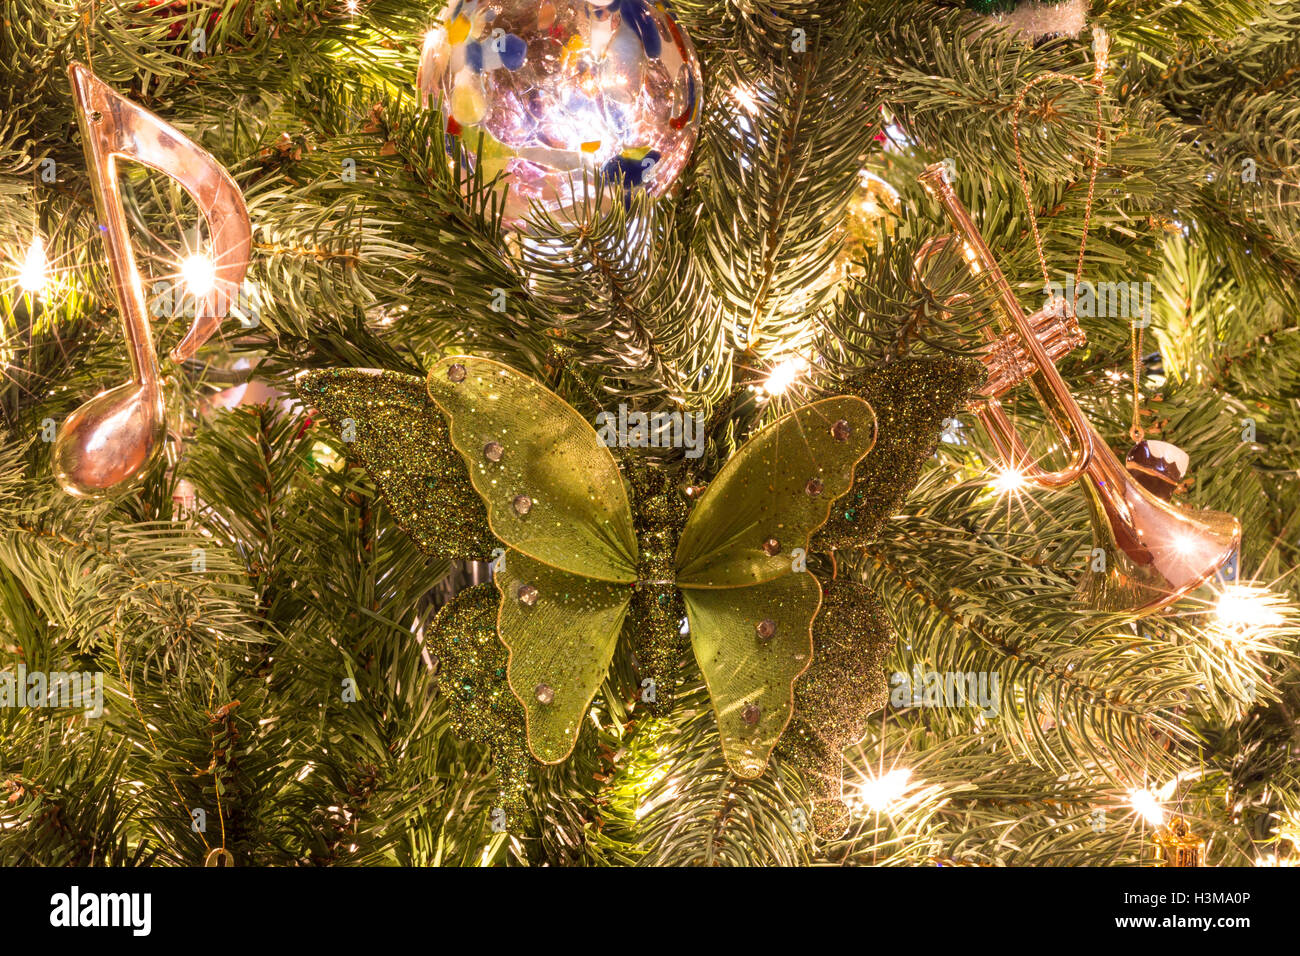 Tree With Music Notes Stock Photos & Tree With Music Notes Stock ...